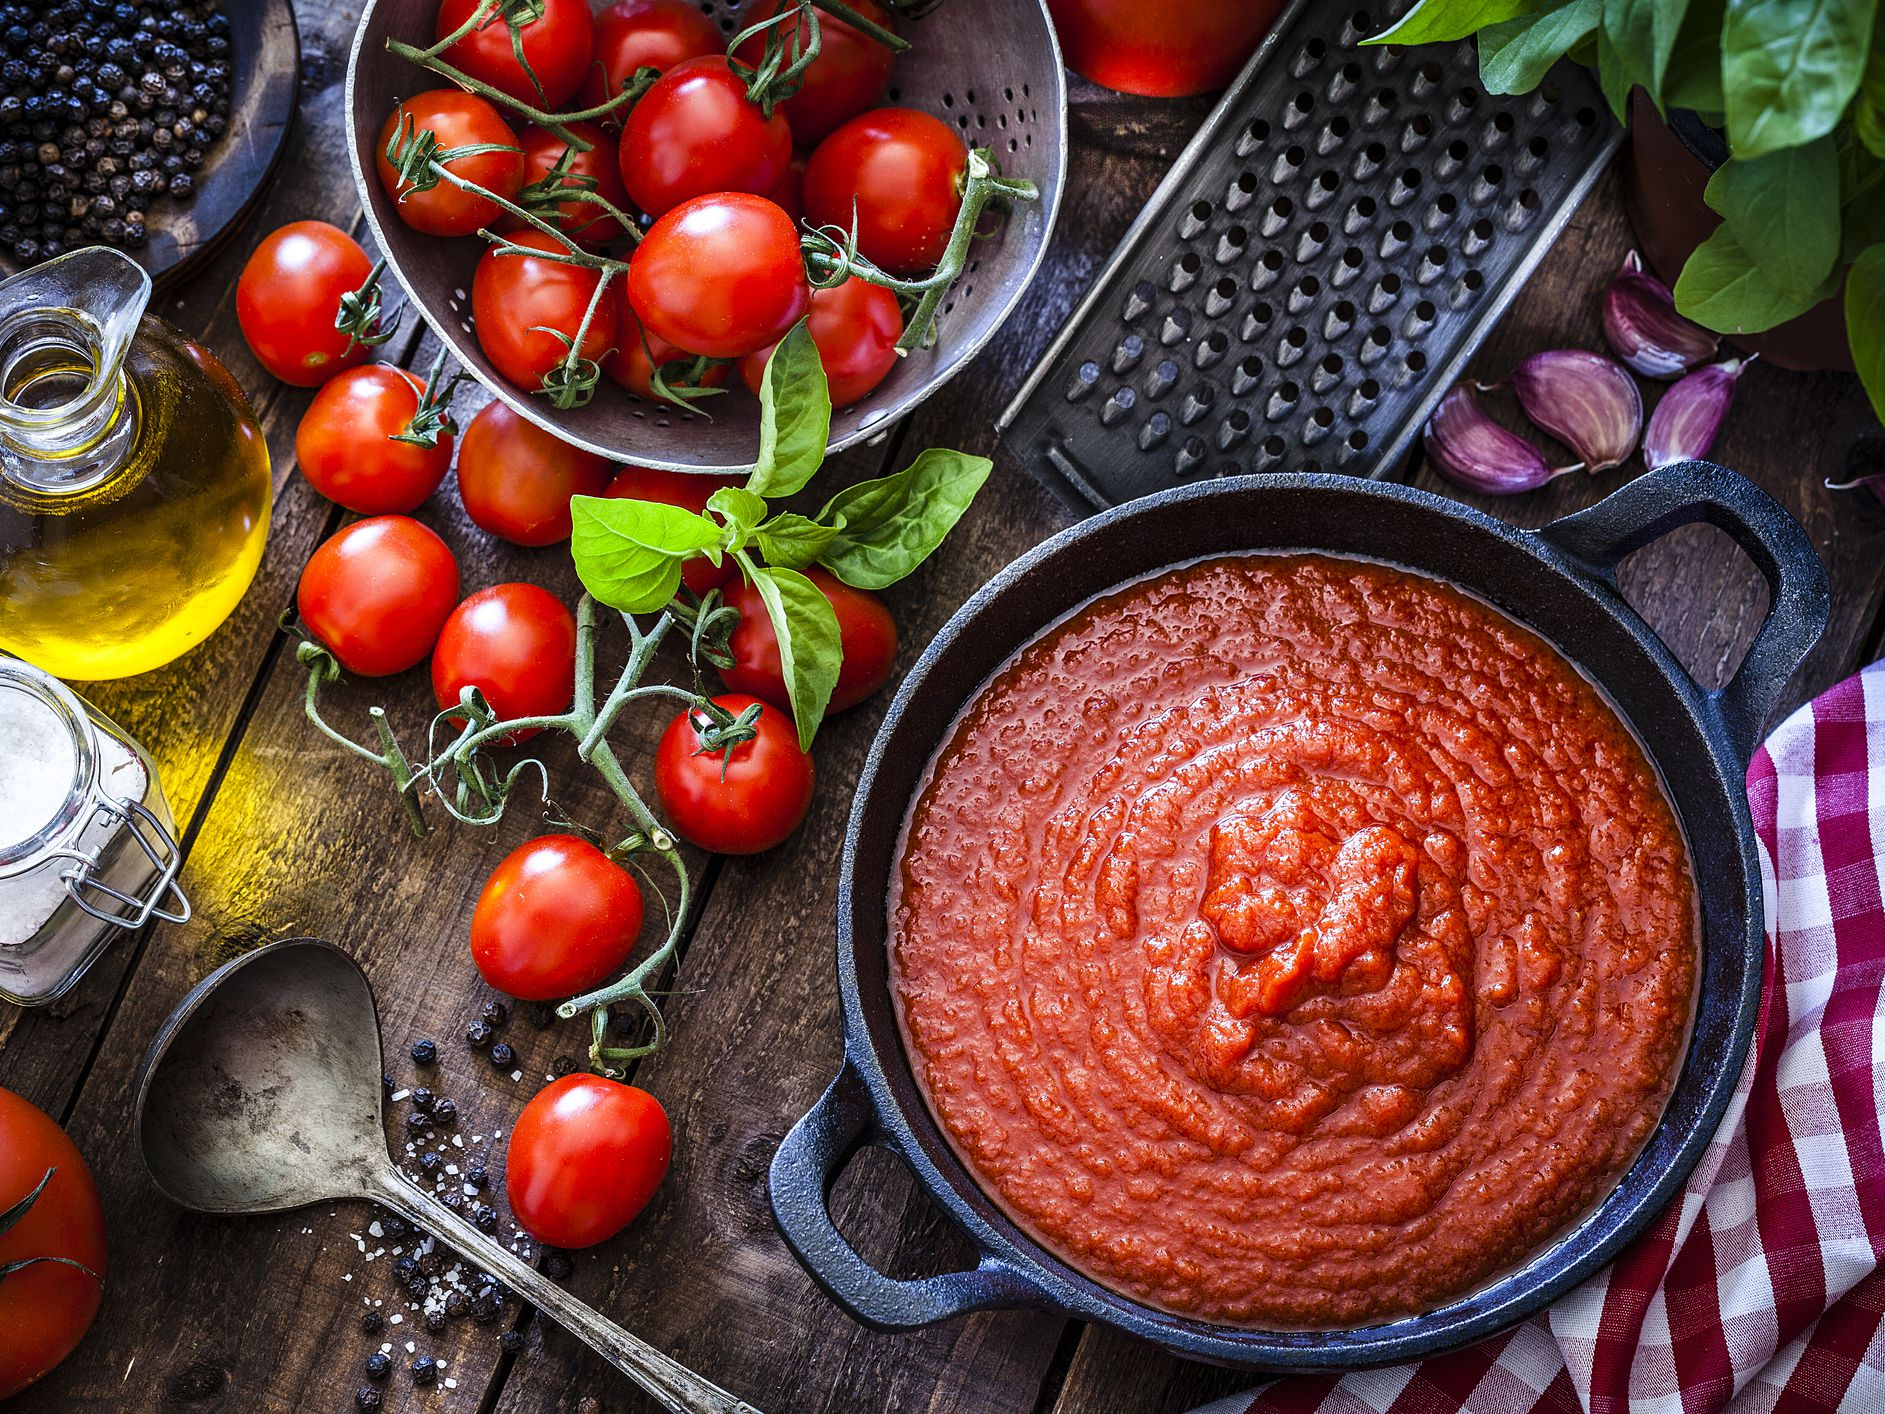 Tomatosauce GettyImages 961510860 5bf1b483c9e77c0051a18f5c